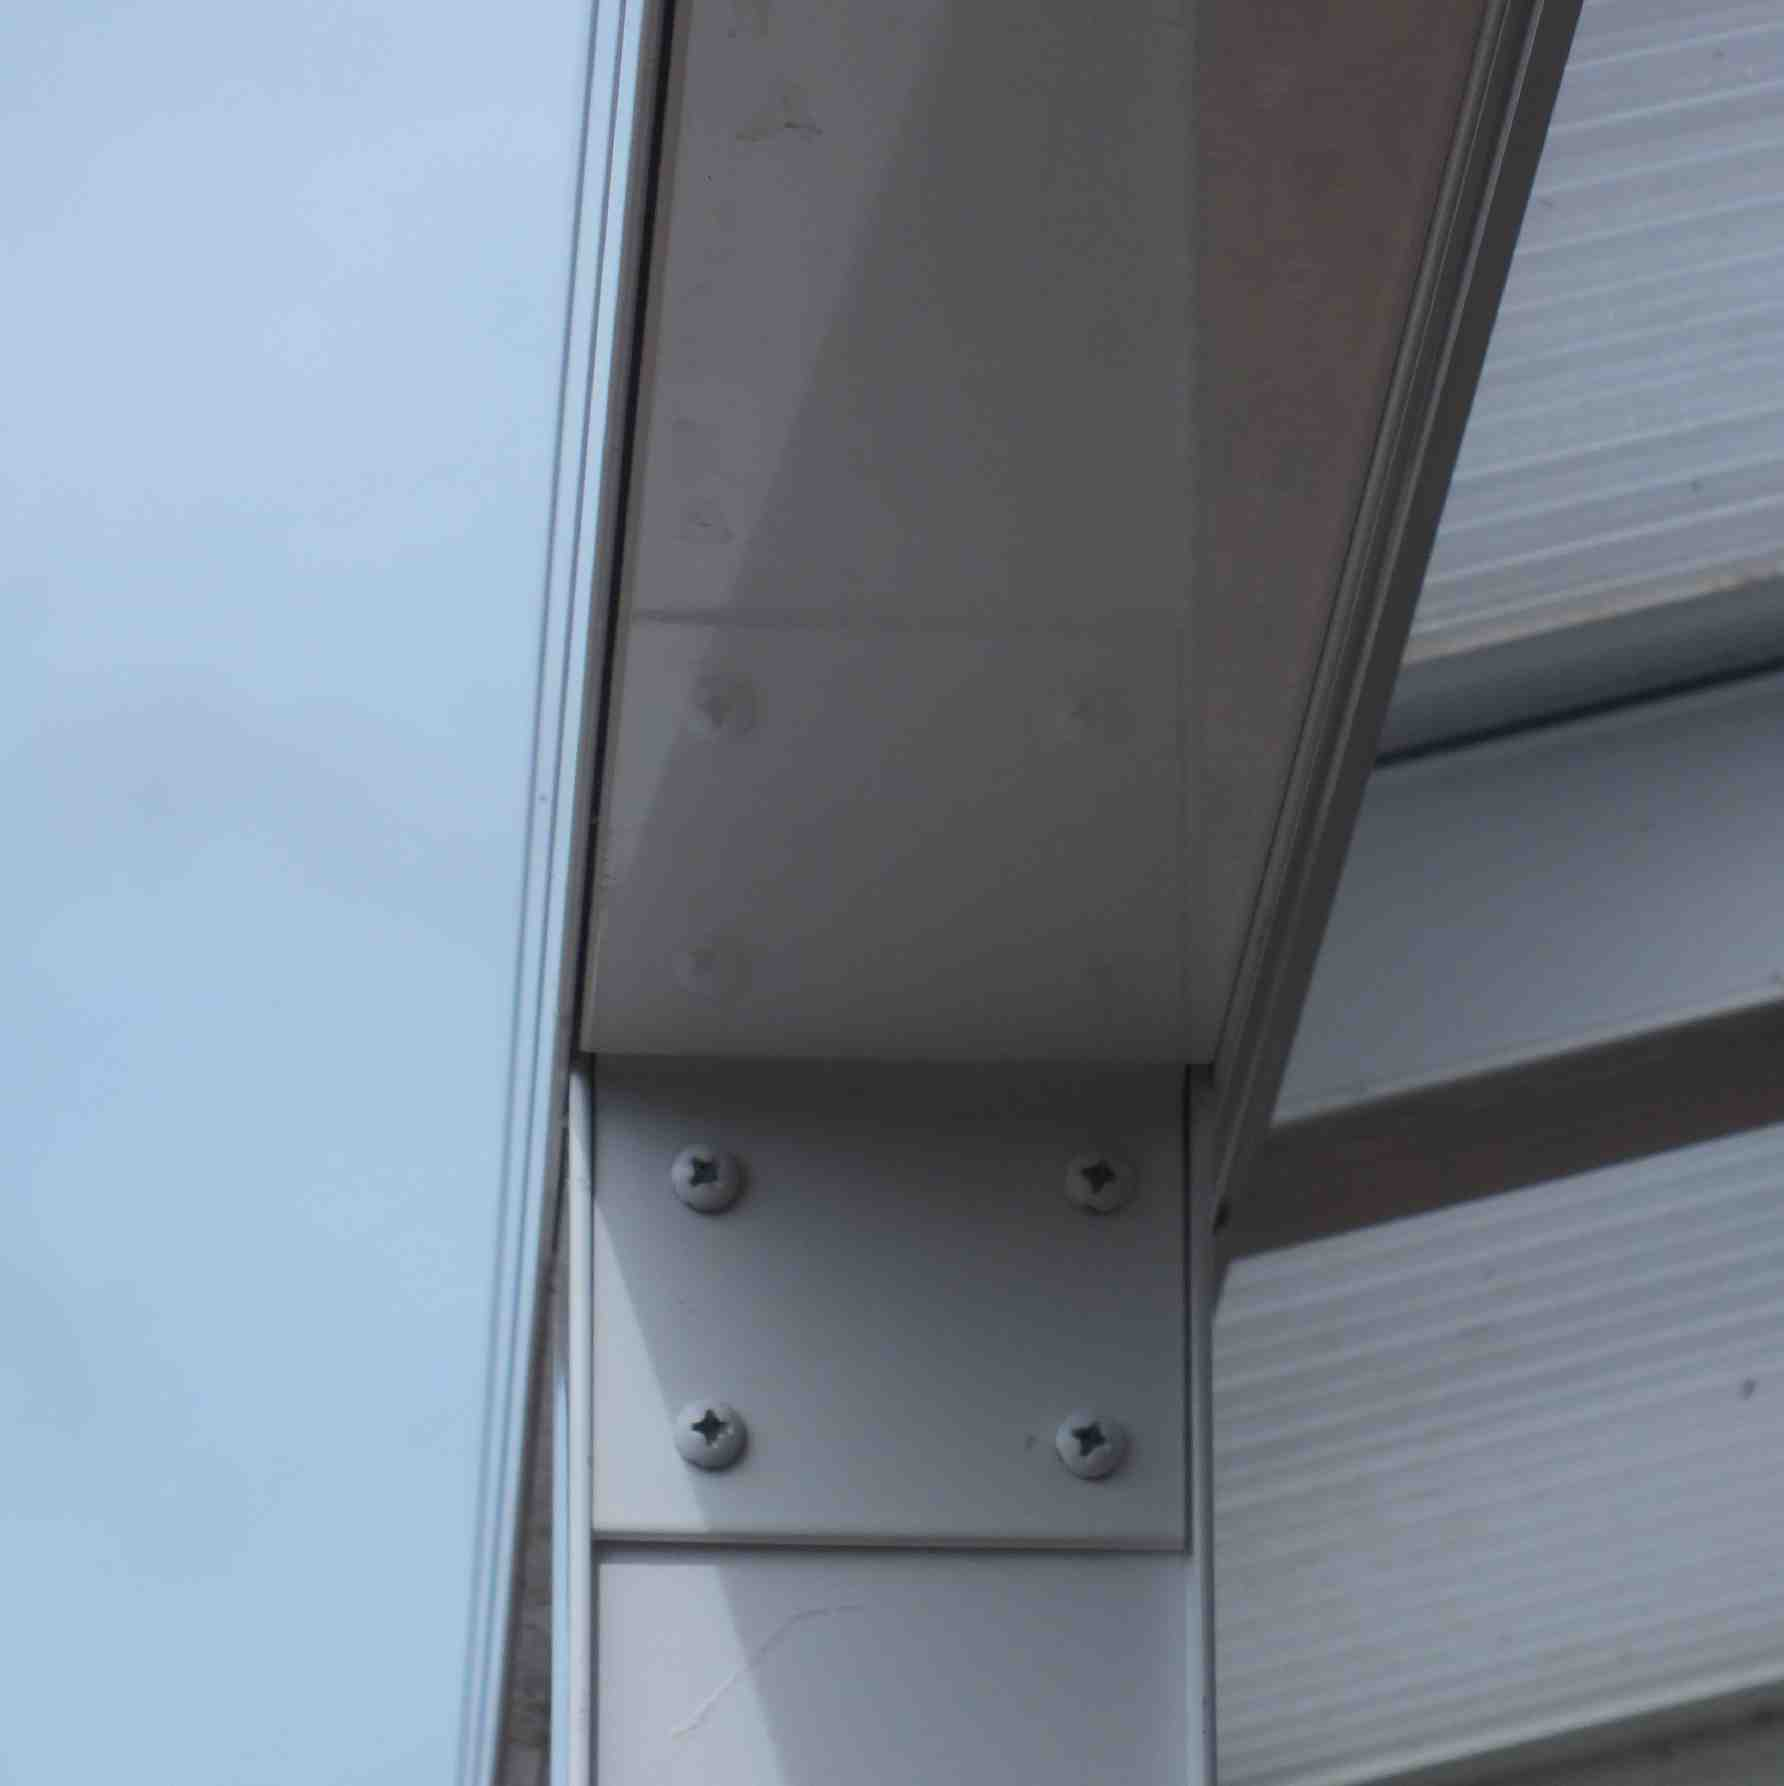 Affordable Omega Verandah with 6mm Glass Clear Plate Polycarbonate Glazing - 10.5m (W) x 1.5m (P), (5) Supporting Posts